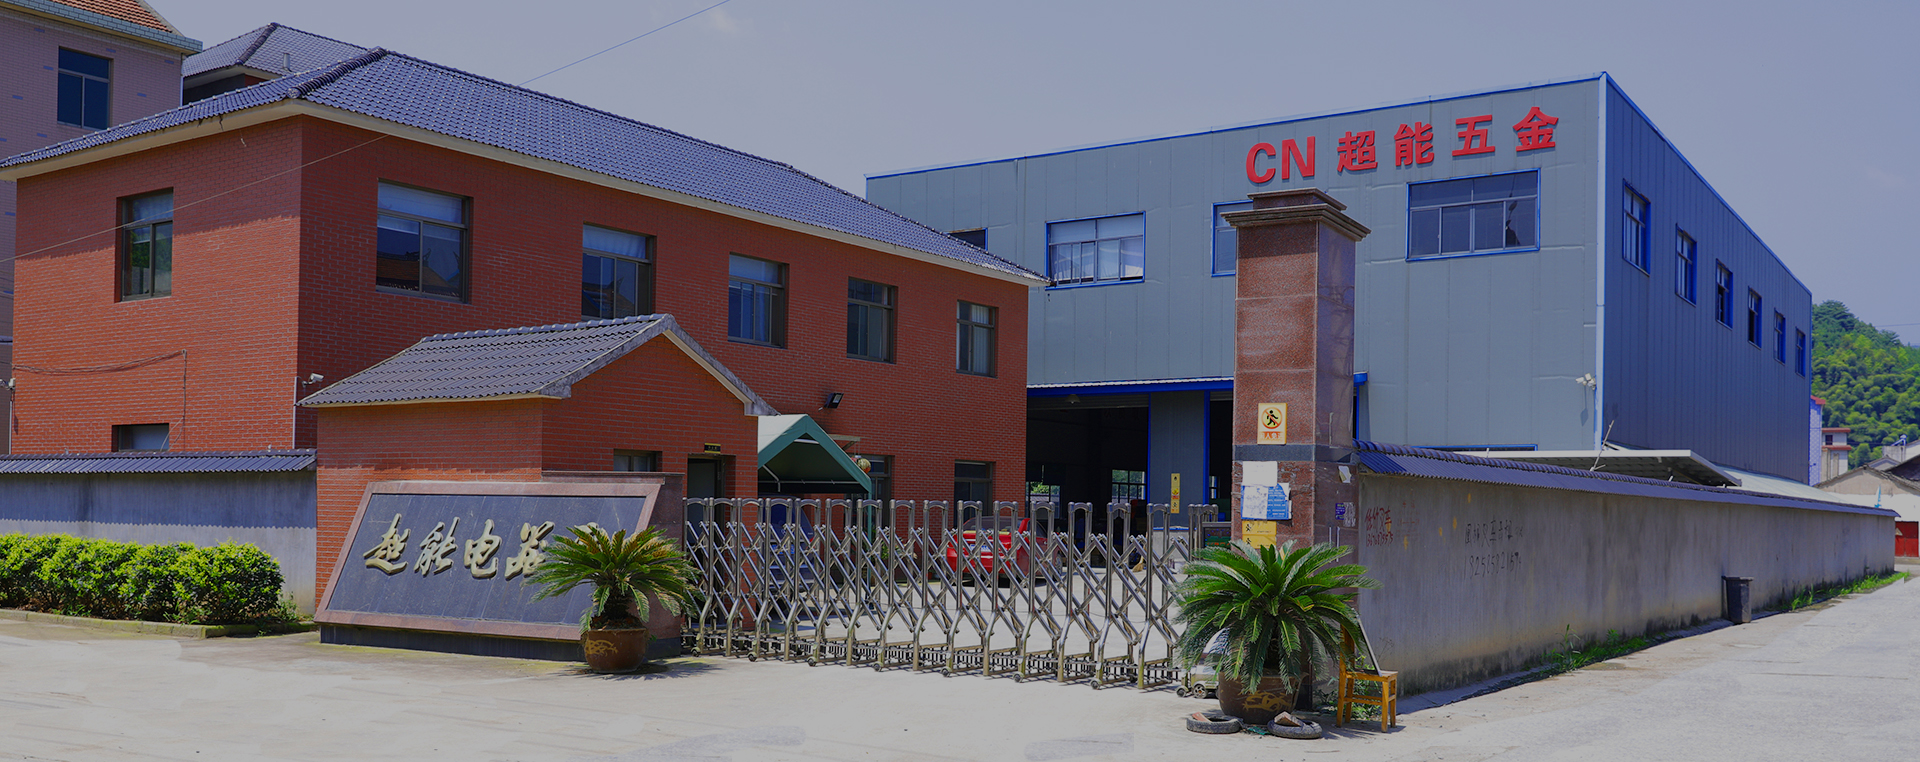 Zhuji Ciwu Chaoneng Electrical Equipment Factory